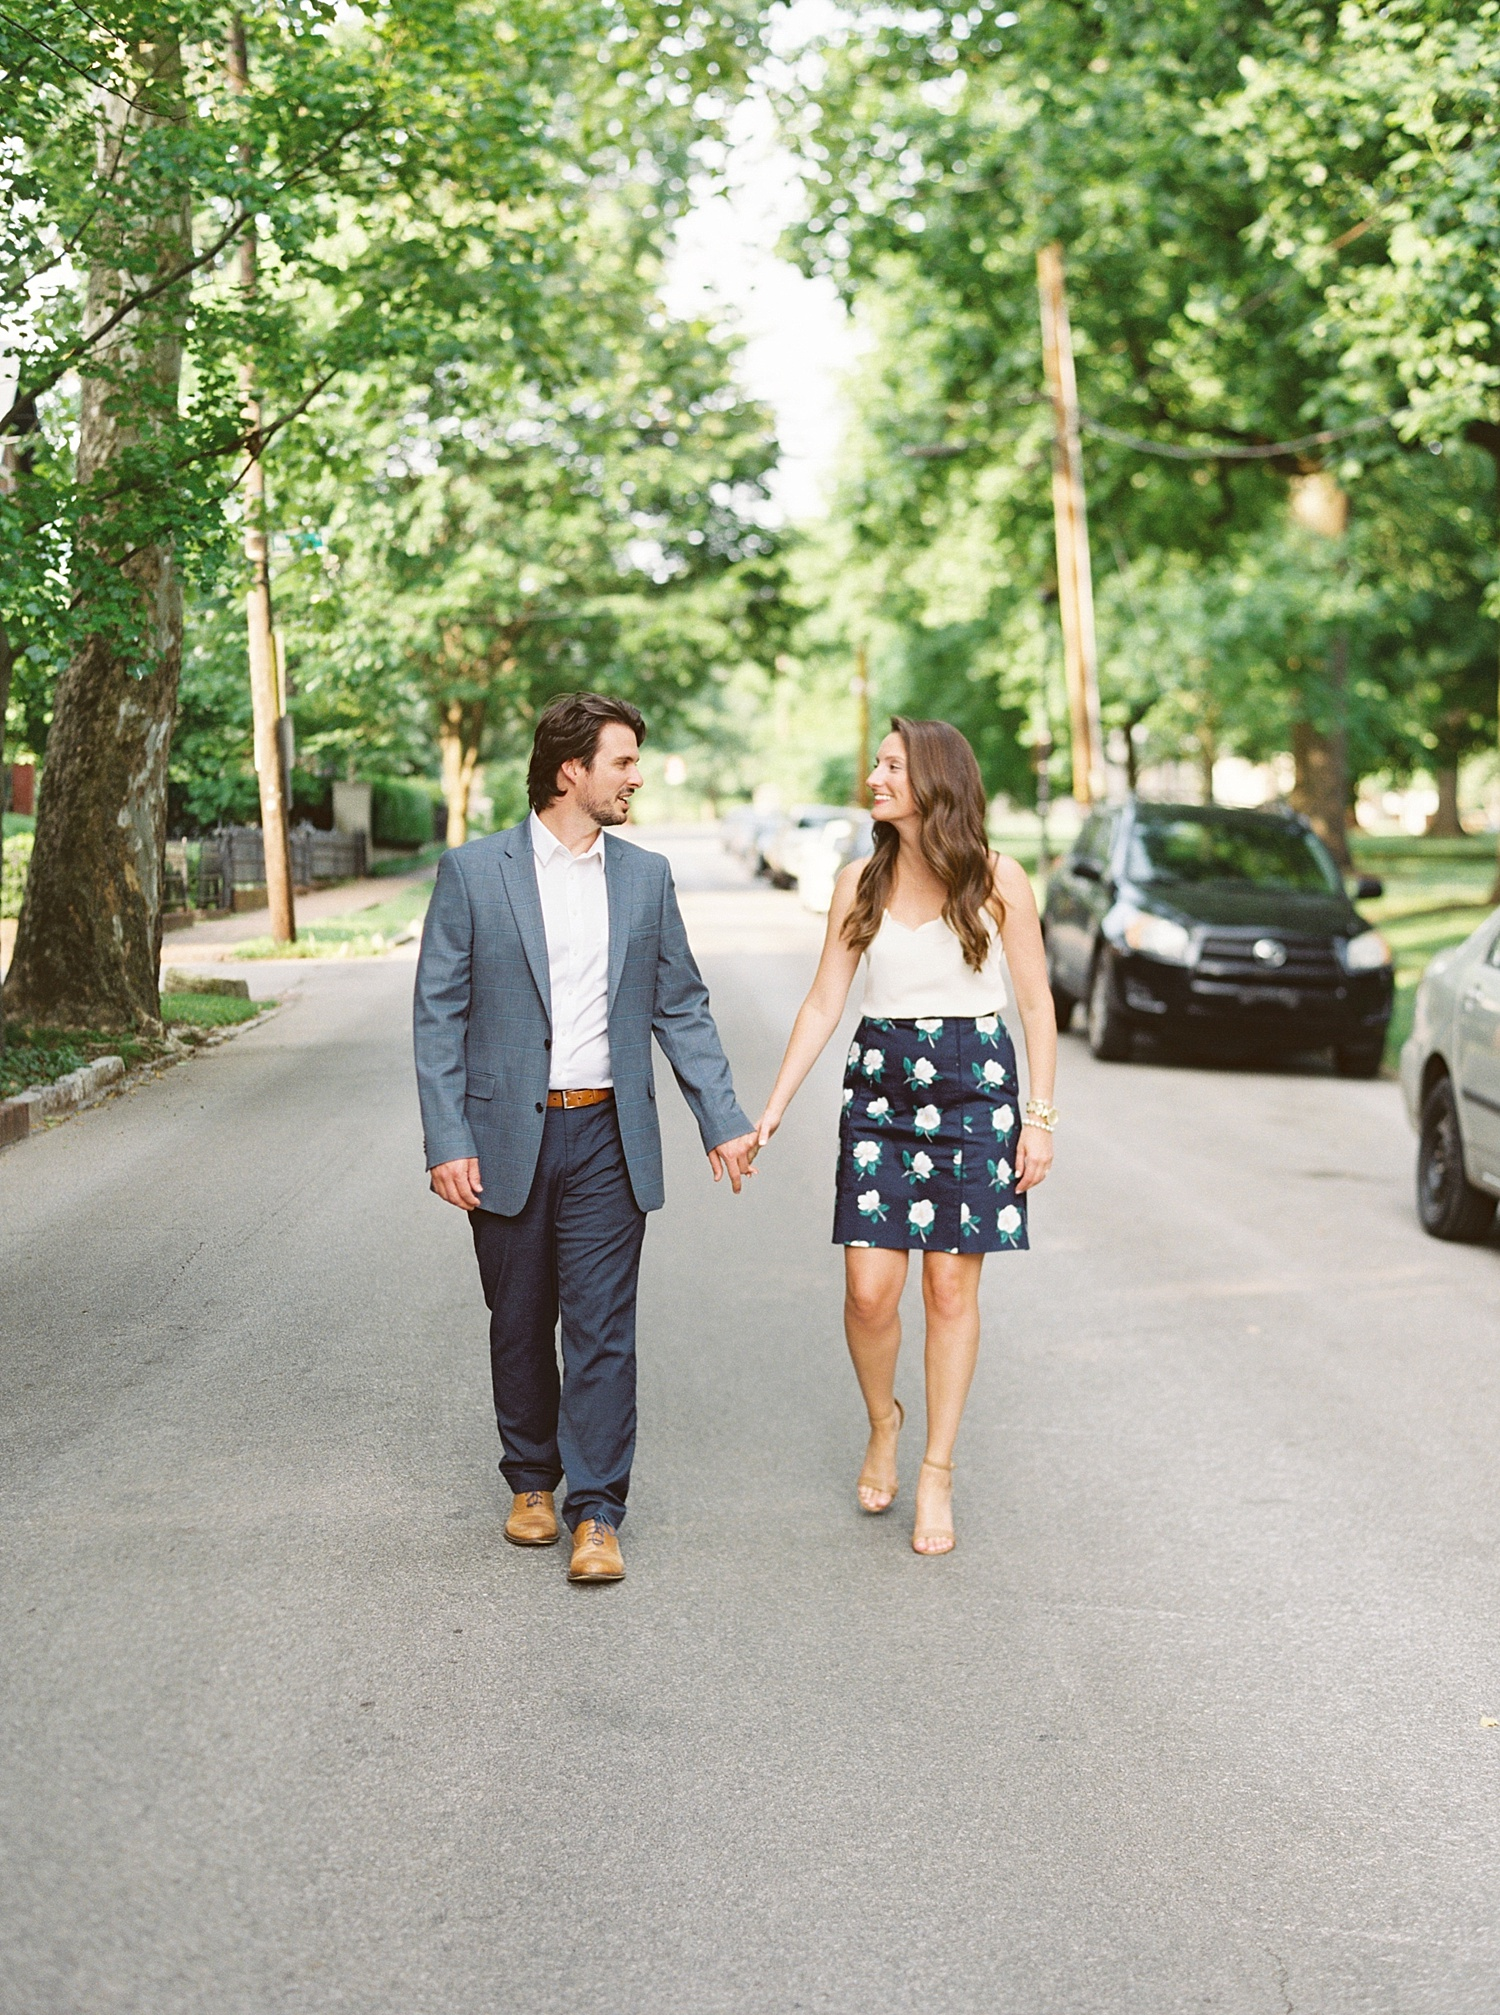 Downtown Lexington Engagement Session Talon Winery Picnic Engagement Session Gal Meets Glam Anthropologie Dress Laura Bodnar Photography Lexington Wedding Photographer Film Photography_0004-1.jpg